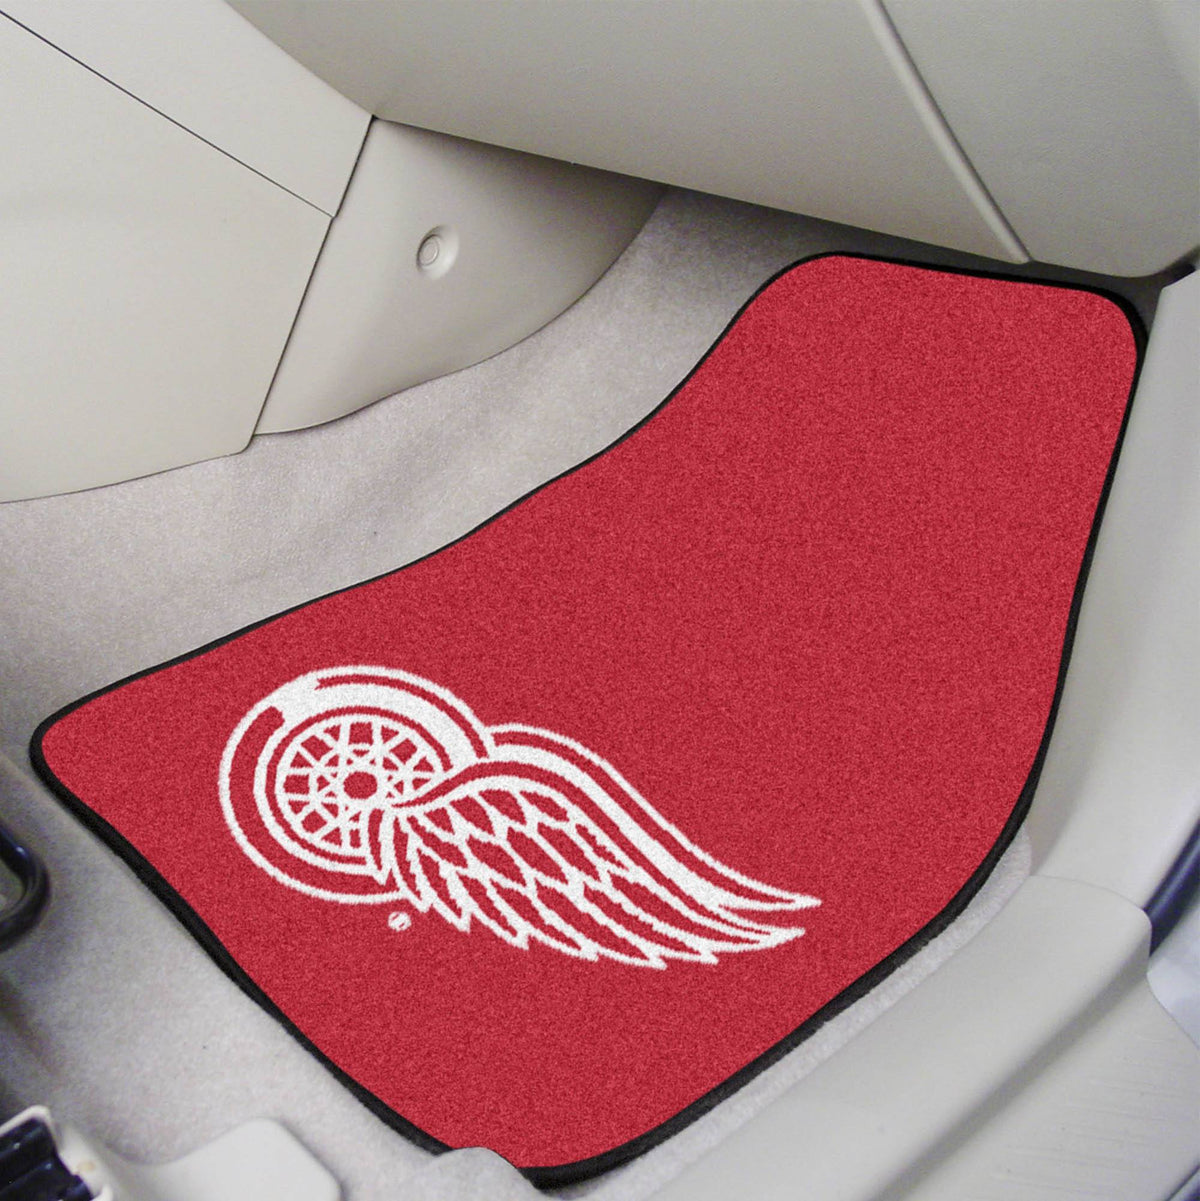 NHL - Carpet Car Mat, 2-Piece Set NHL Mats, Front Car Mats, 2-pc Carpet Car Mat Set, NHL, Auto Fan Mats Detroit Red Wings